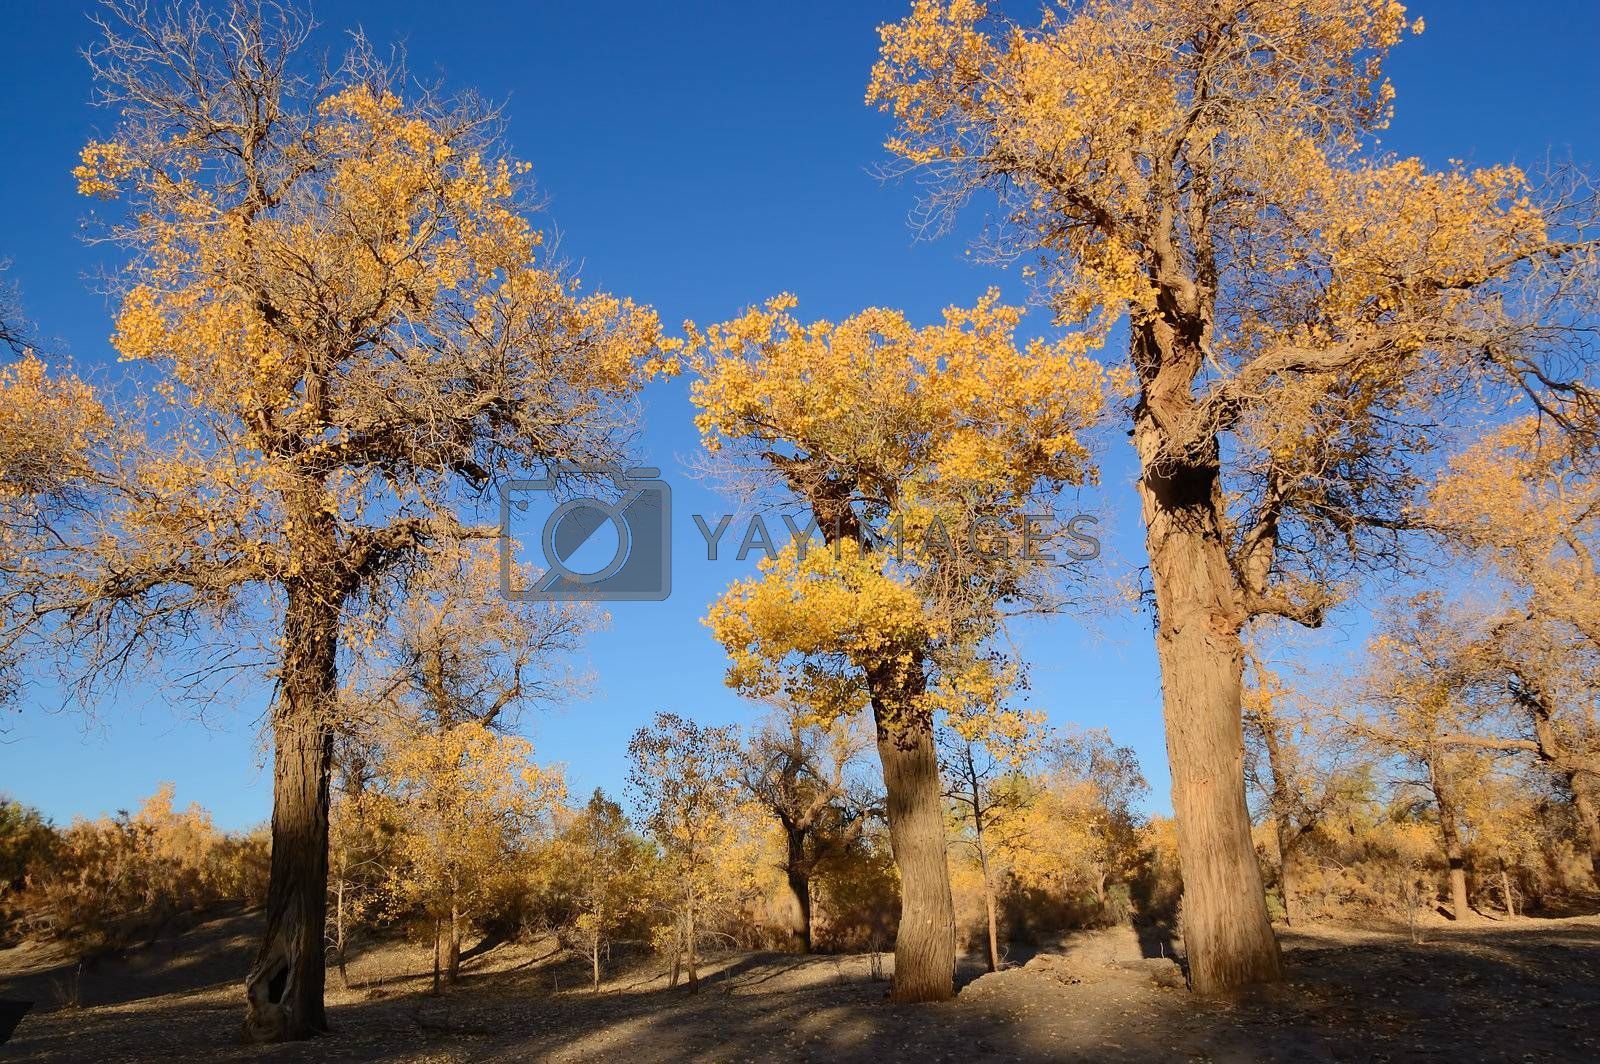 Trees of diversifolia populus in North China